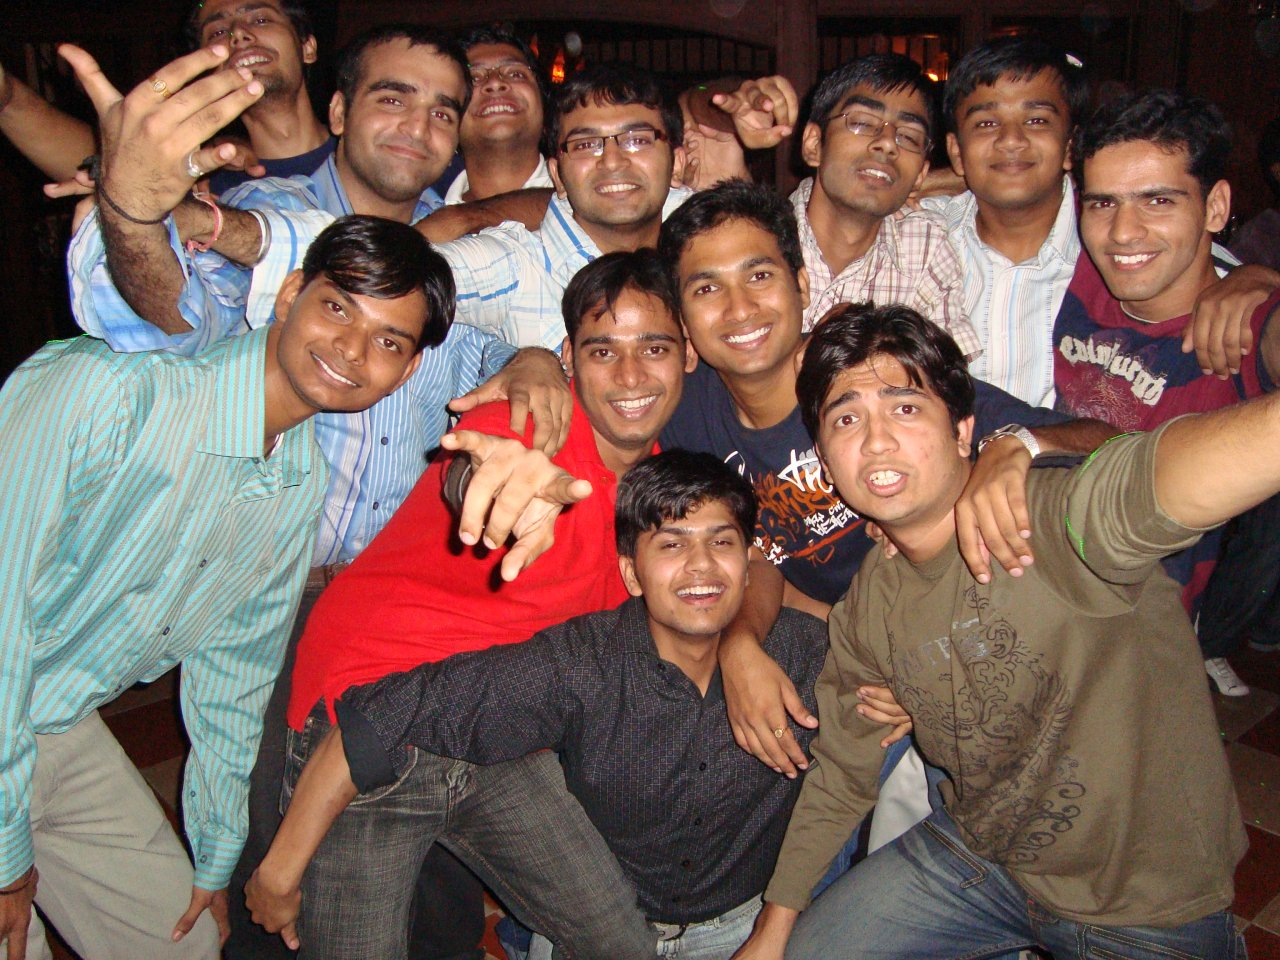 Somani Birthday at Club8 - We